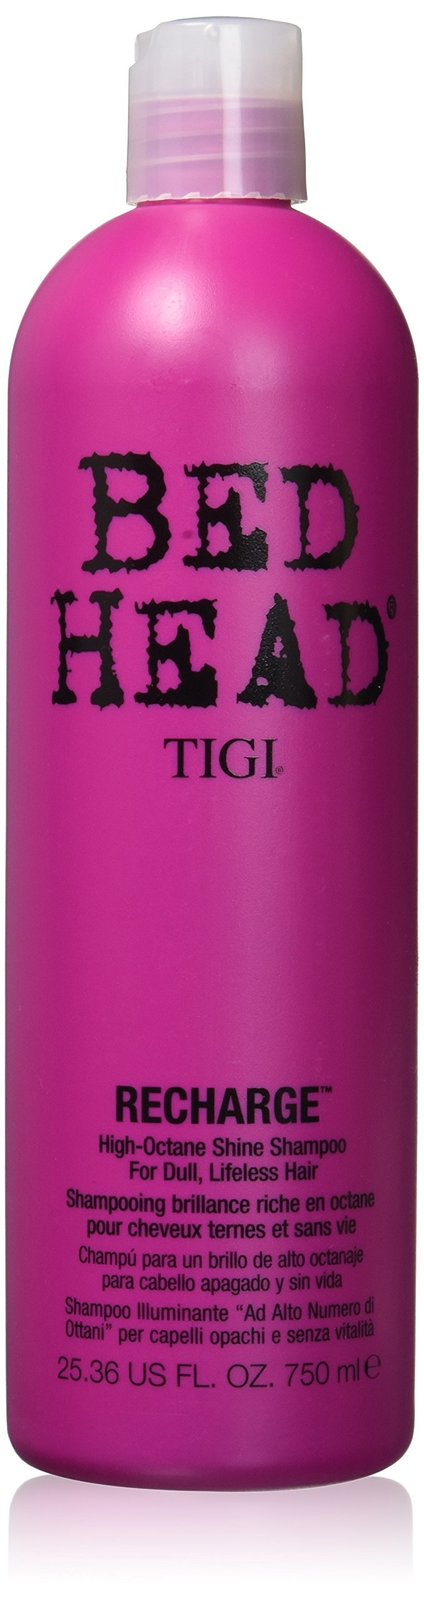 TIGI Bed Head Recharge High-Octane Shine Shampoo, 25.36 Ounce